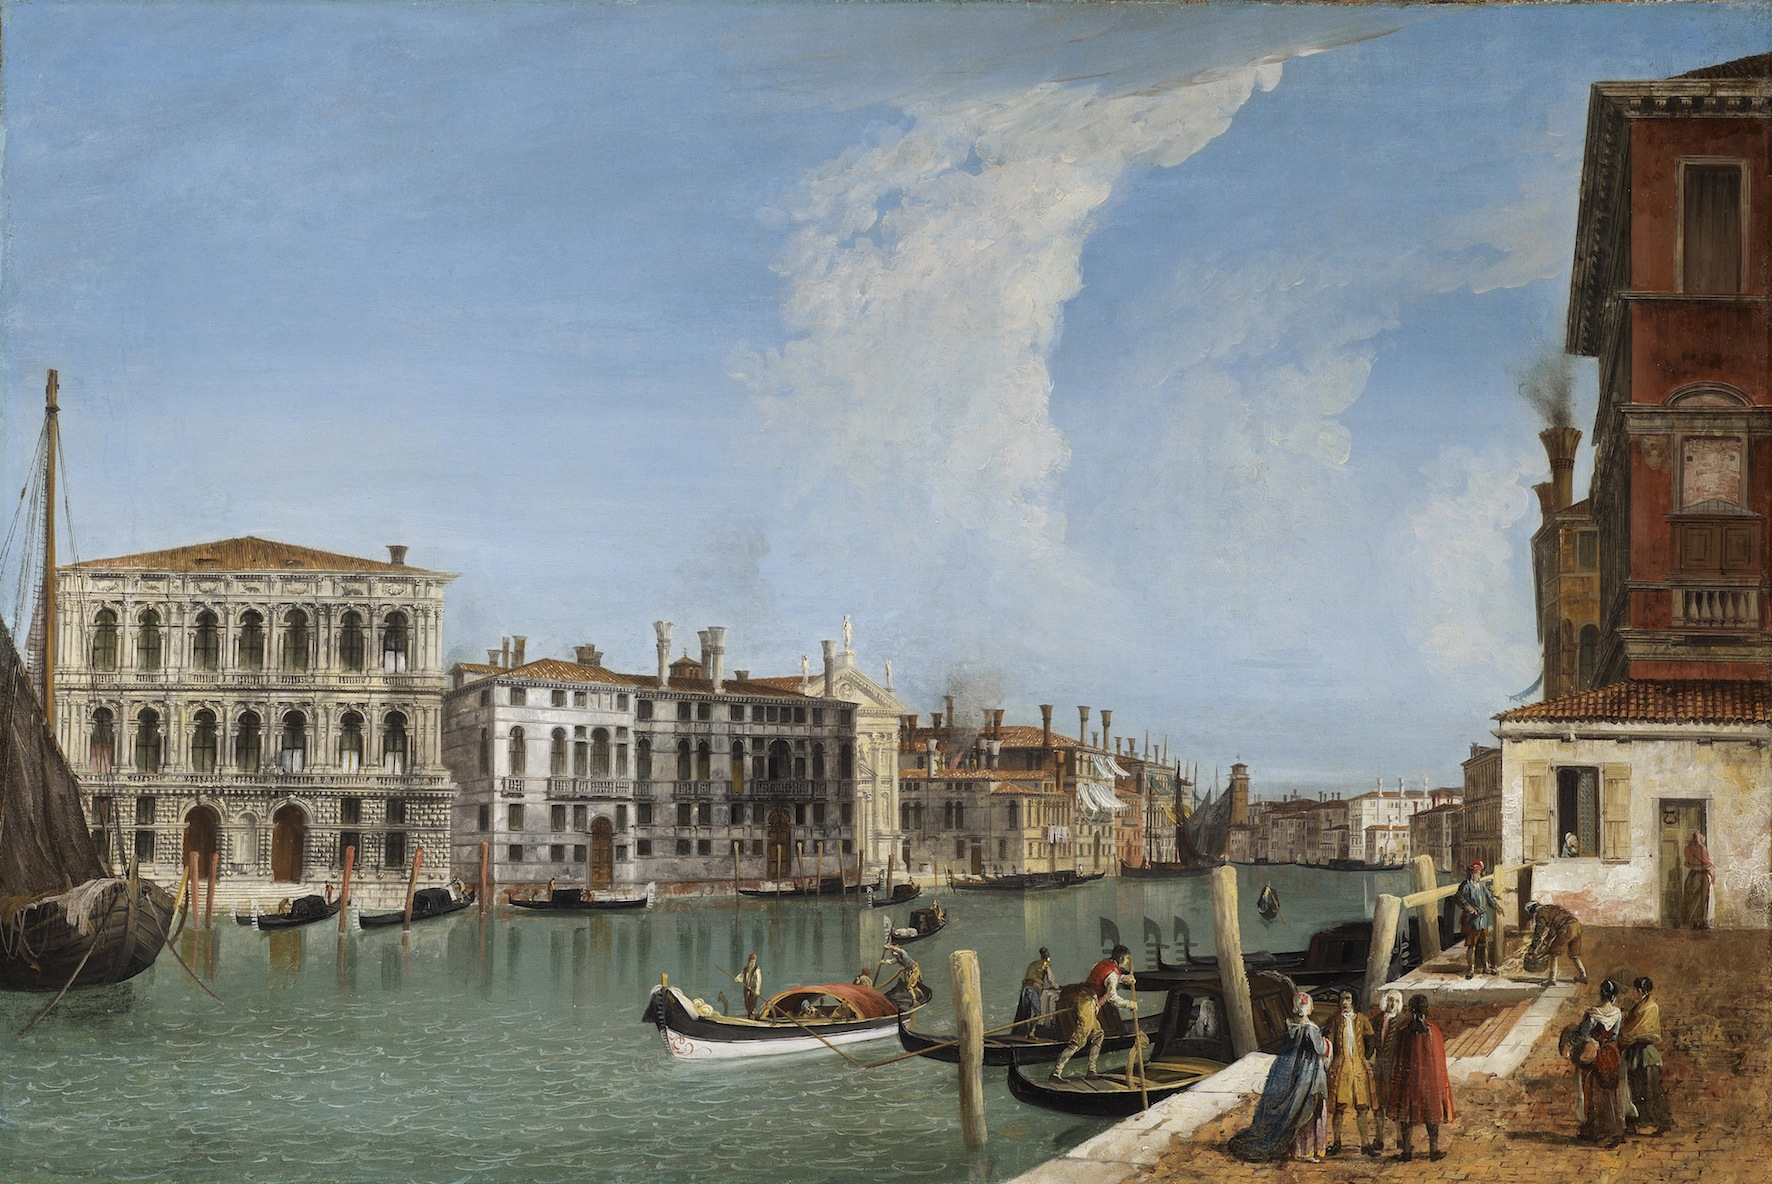 Michele Marieschi      (Venice 1710 - 1743)                The Grand Canal with Ca' Pesaro and Palazzo Foscarini-Giovannelli, from the Campiello of Palazzo Gussoni       Oil on canvas, 58 x 86 cm.